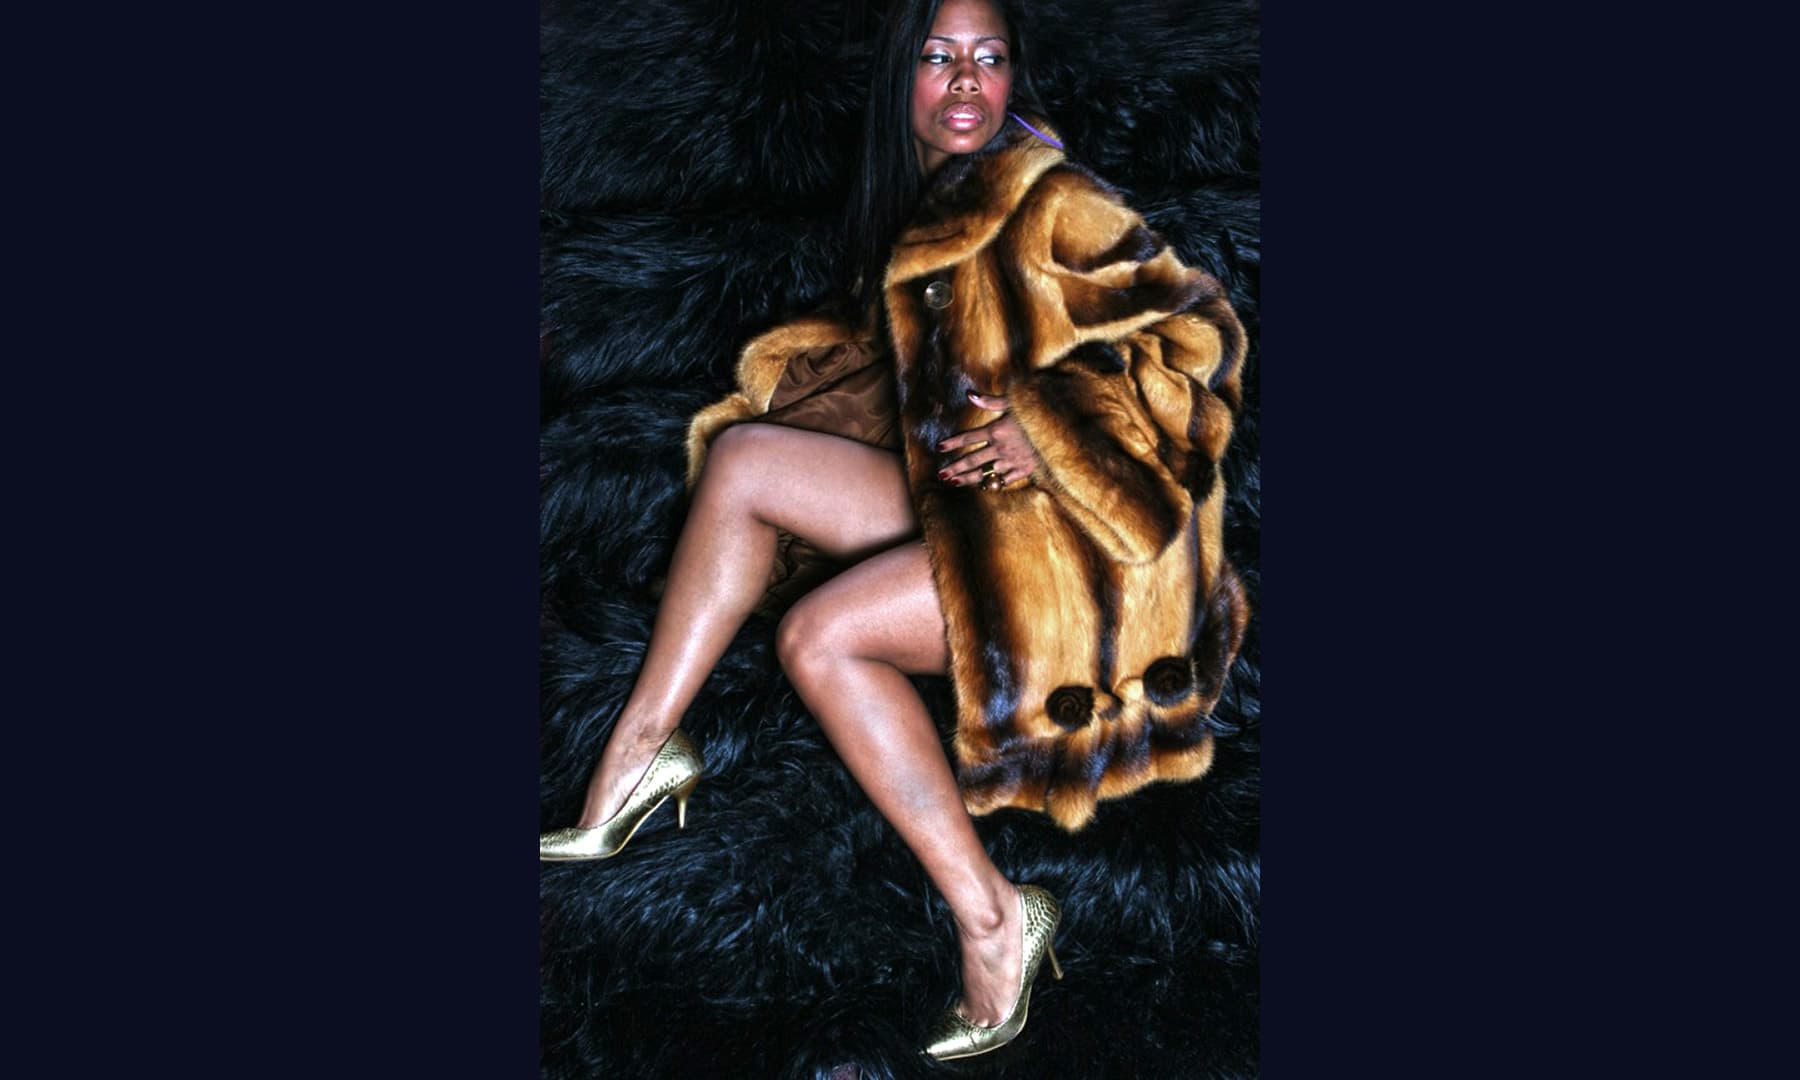 Custom designed furs